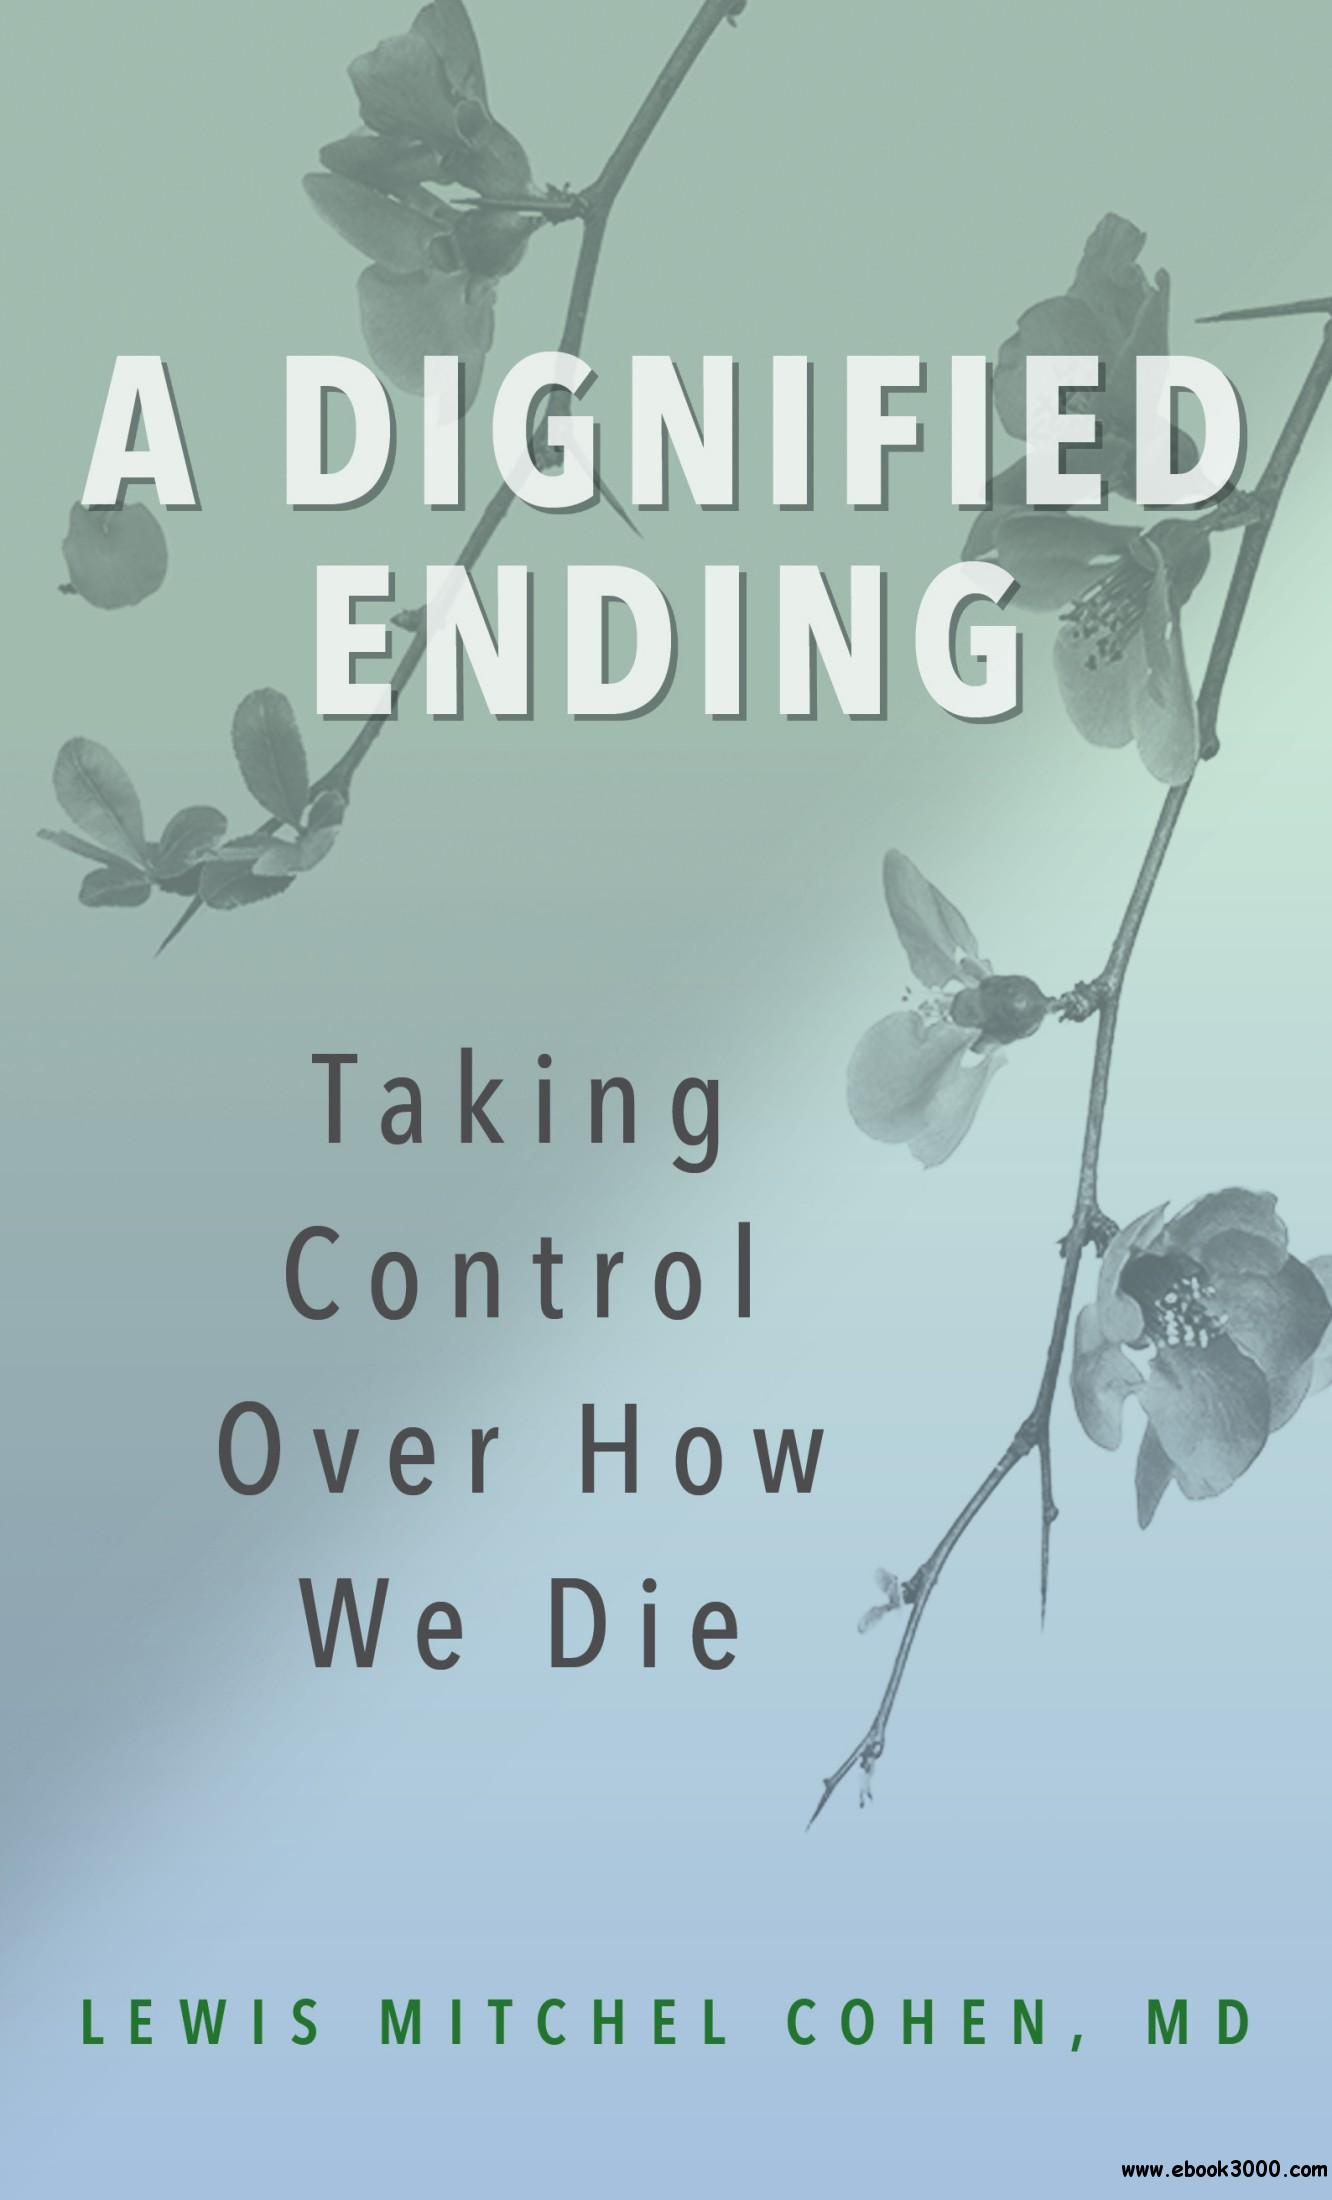 A Dignified Ending: Taking Control Over How We Die